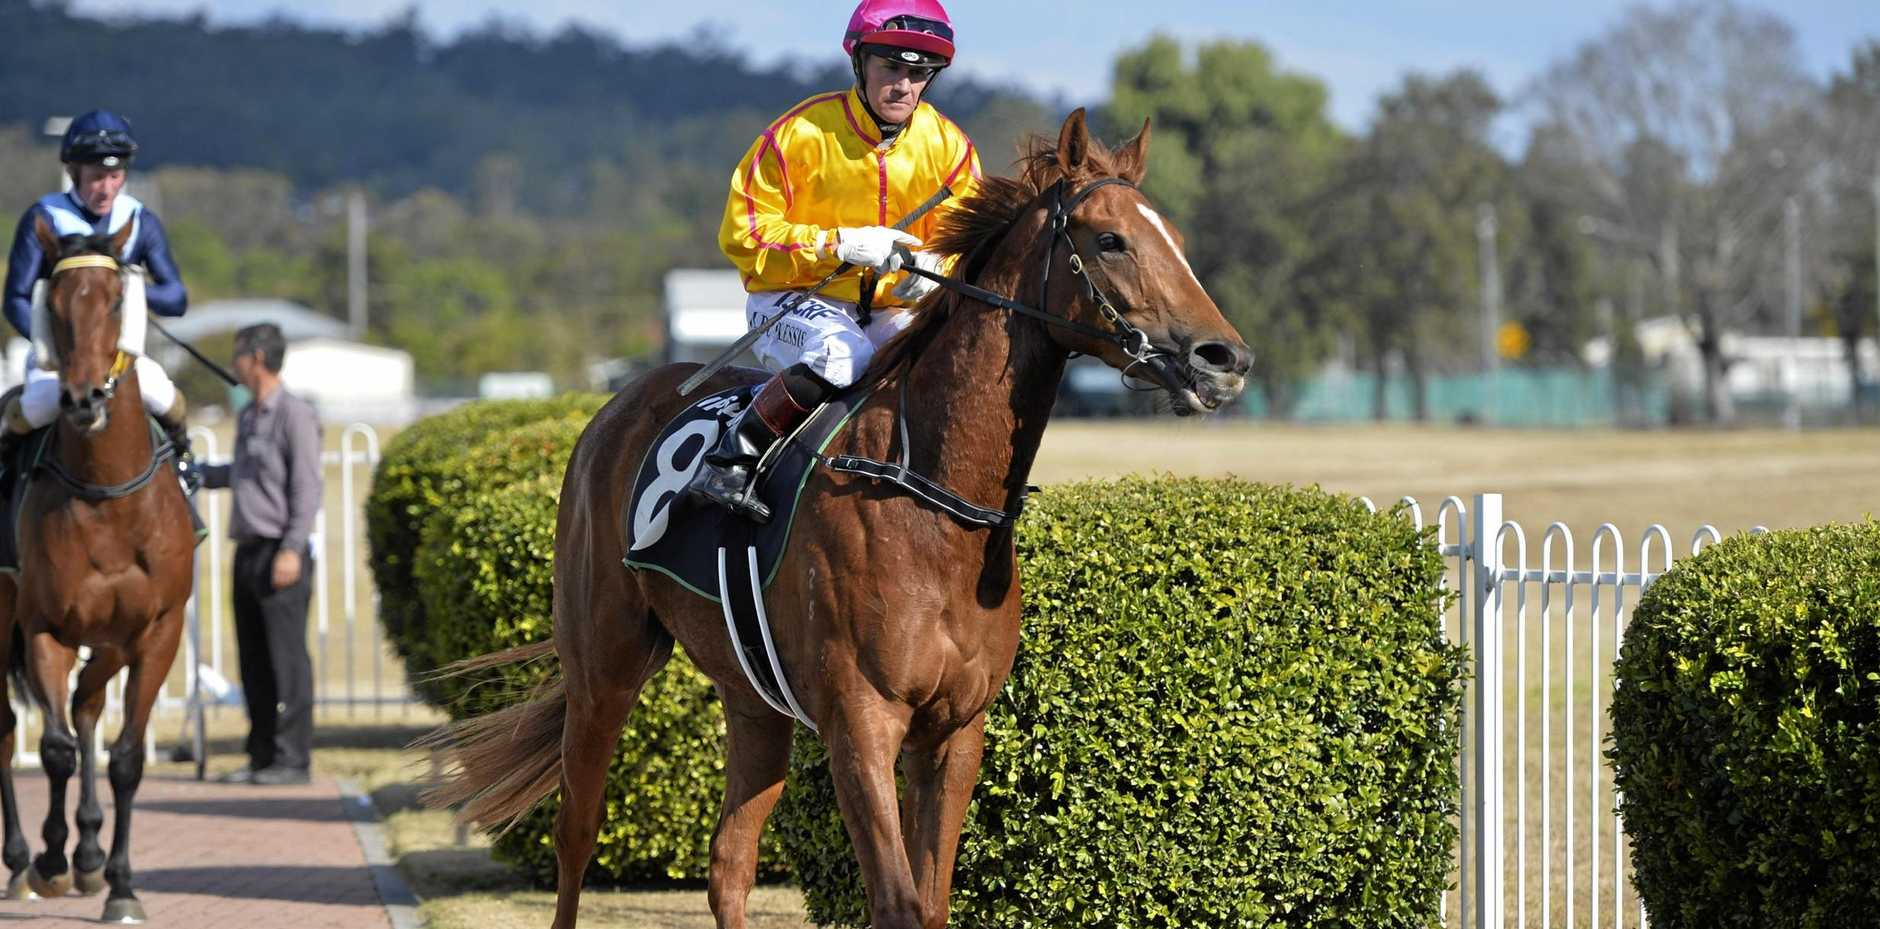 Jockey Mark Du Plessis guides Trail of Glory back into the Ipswich enclosure.